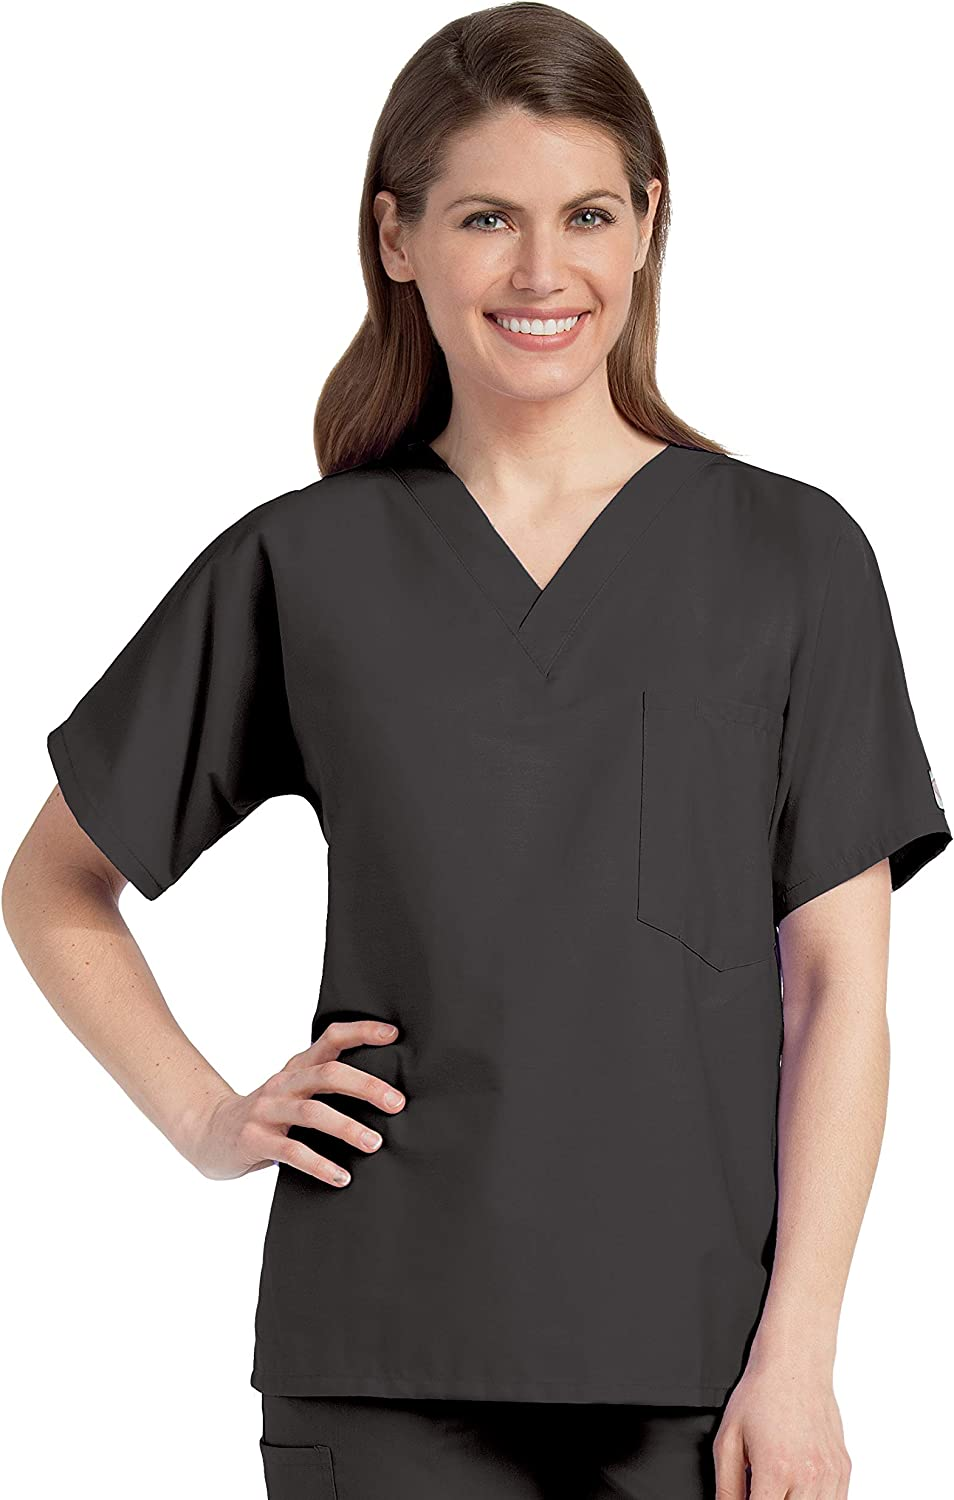 Scrub Zone Outlet ☆ Ranking TOP7 Free Shipping 1-Pocket Classic Relaxed V-Neck Fit Durable Medical